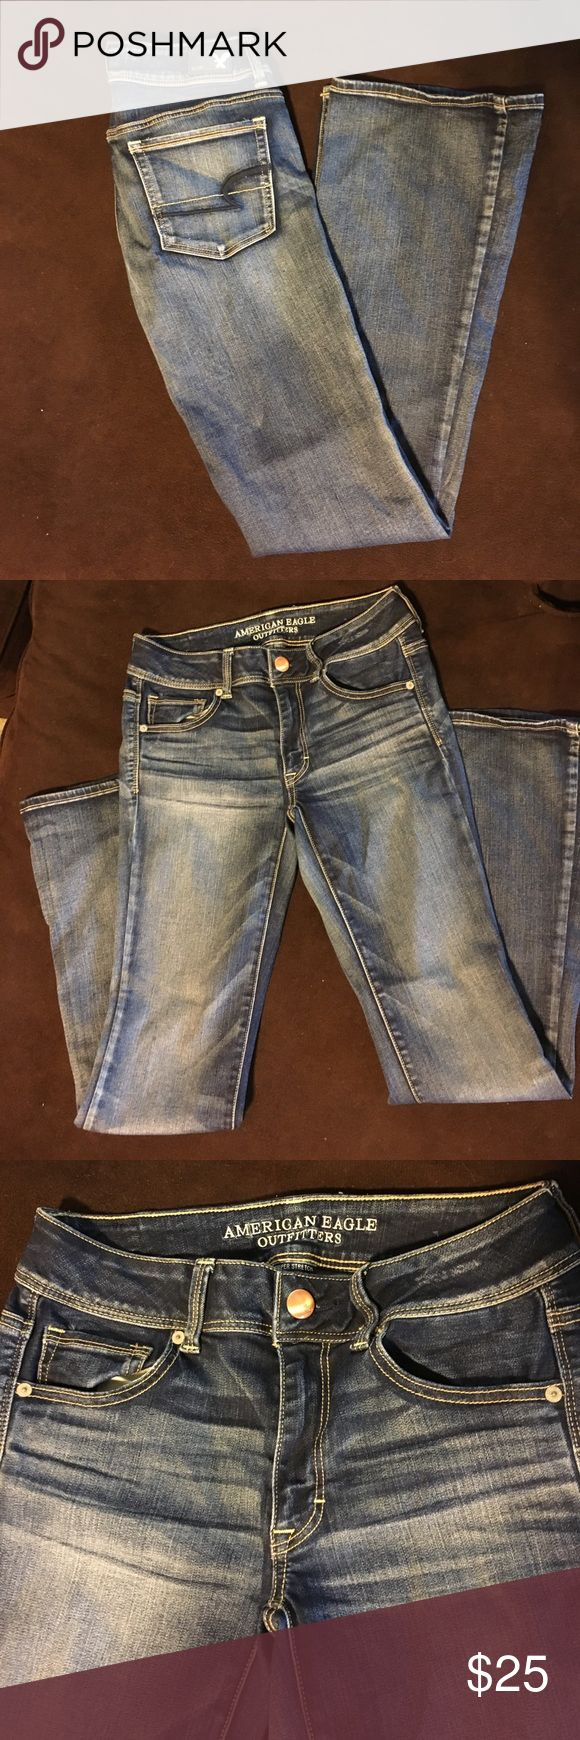 NWOT American Eagle Jeans, SZ 6 NWOT American Eagle Jeans! Size 6, regular. Kick Boot cut. Excellent Condition! Jeans have stretch in them. American Eagle Outfitters Jeans Boot Cut